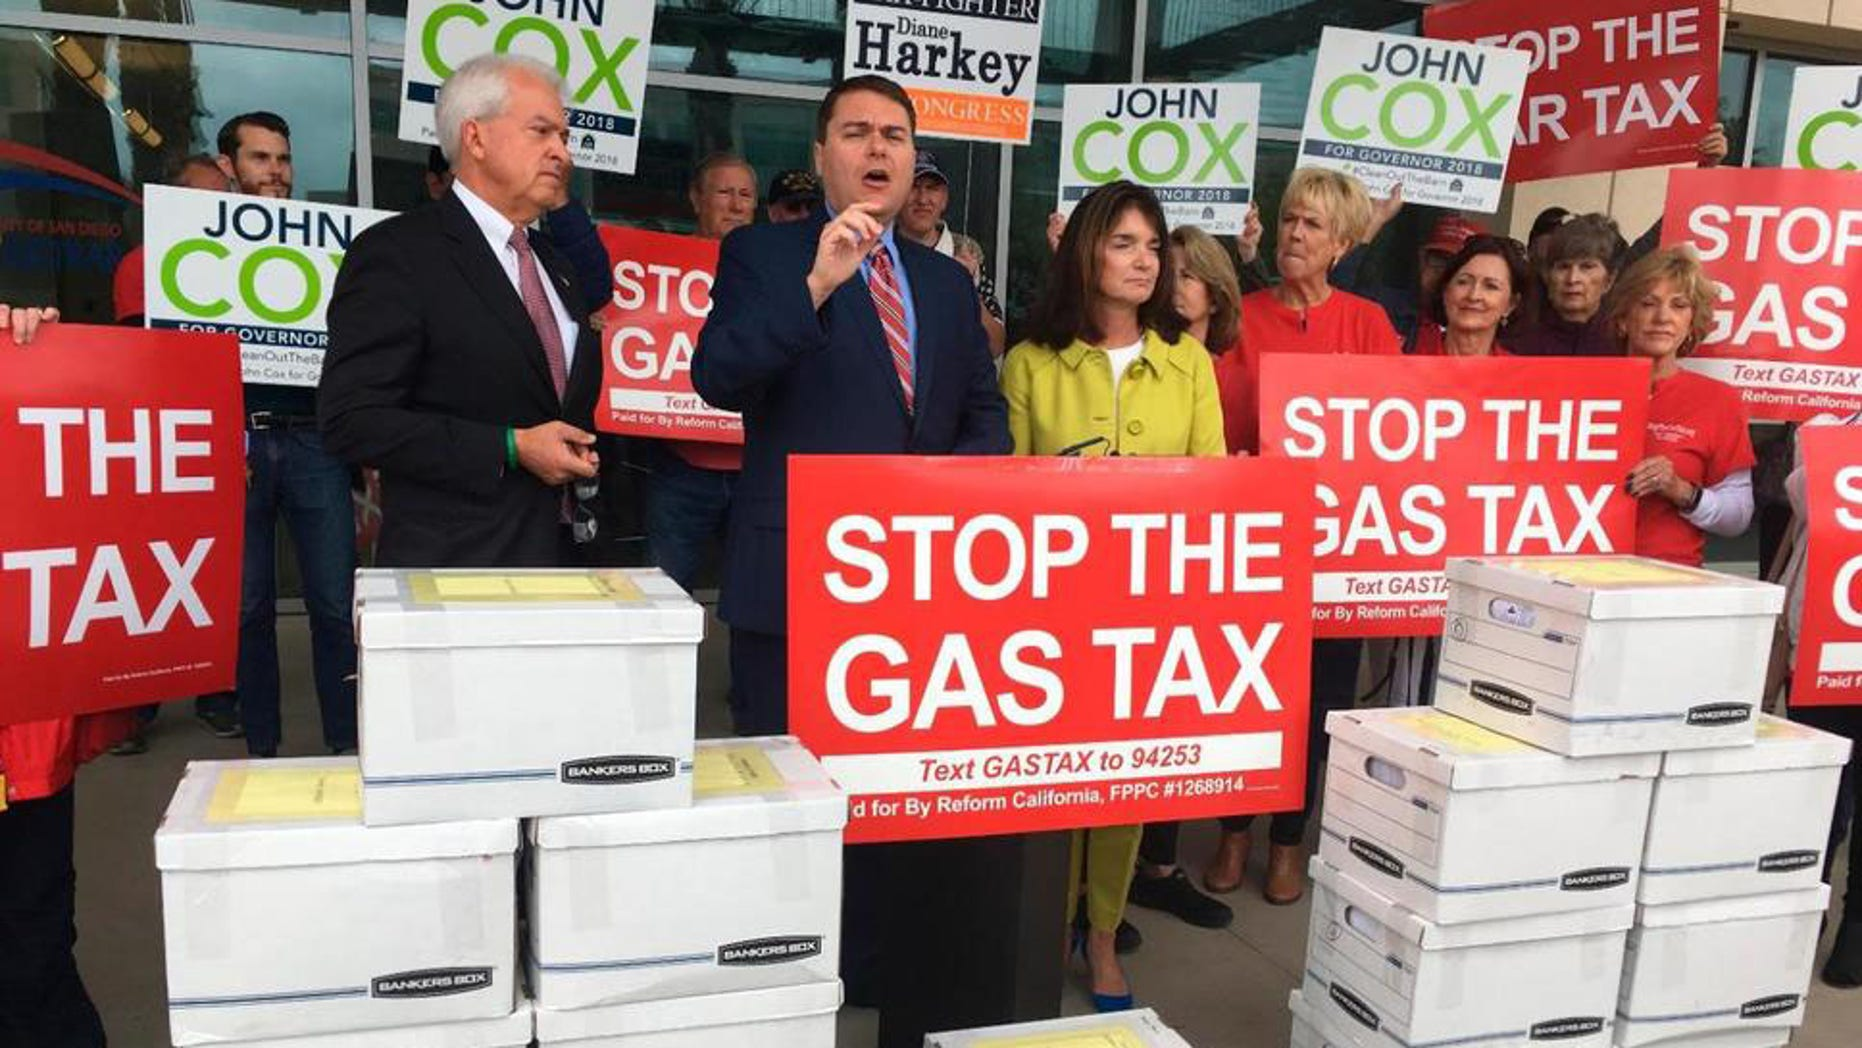 Opponents of the California gas tax hike could help Republicans save their House seats.